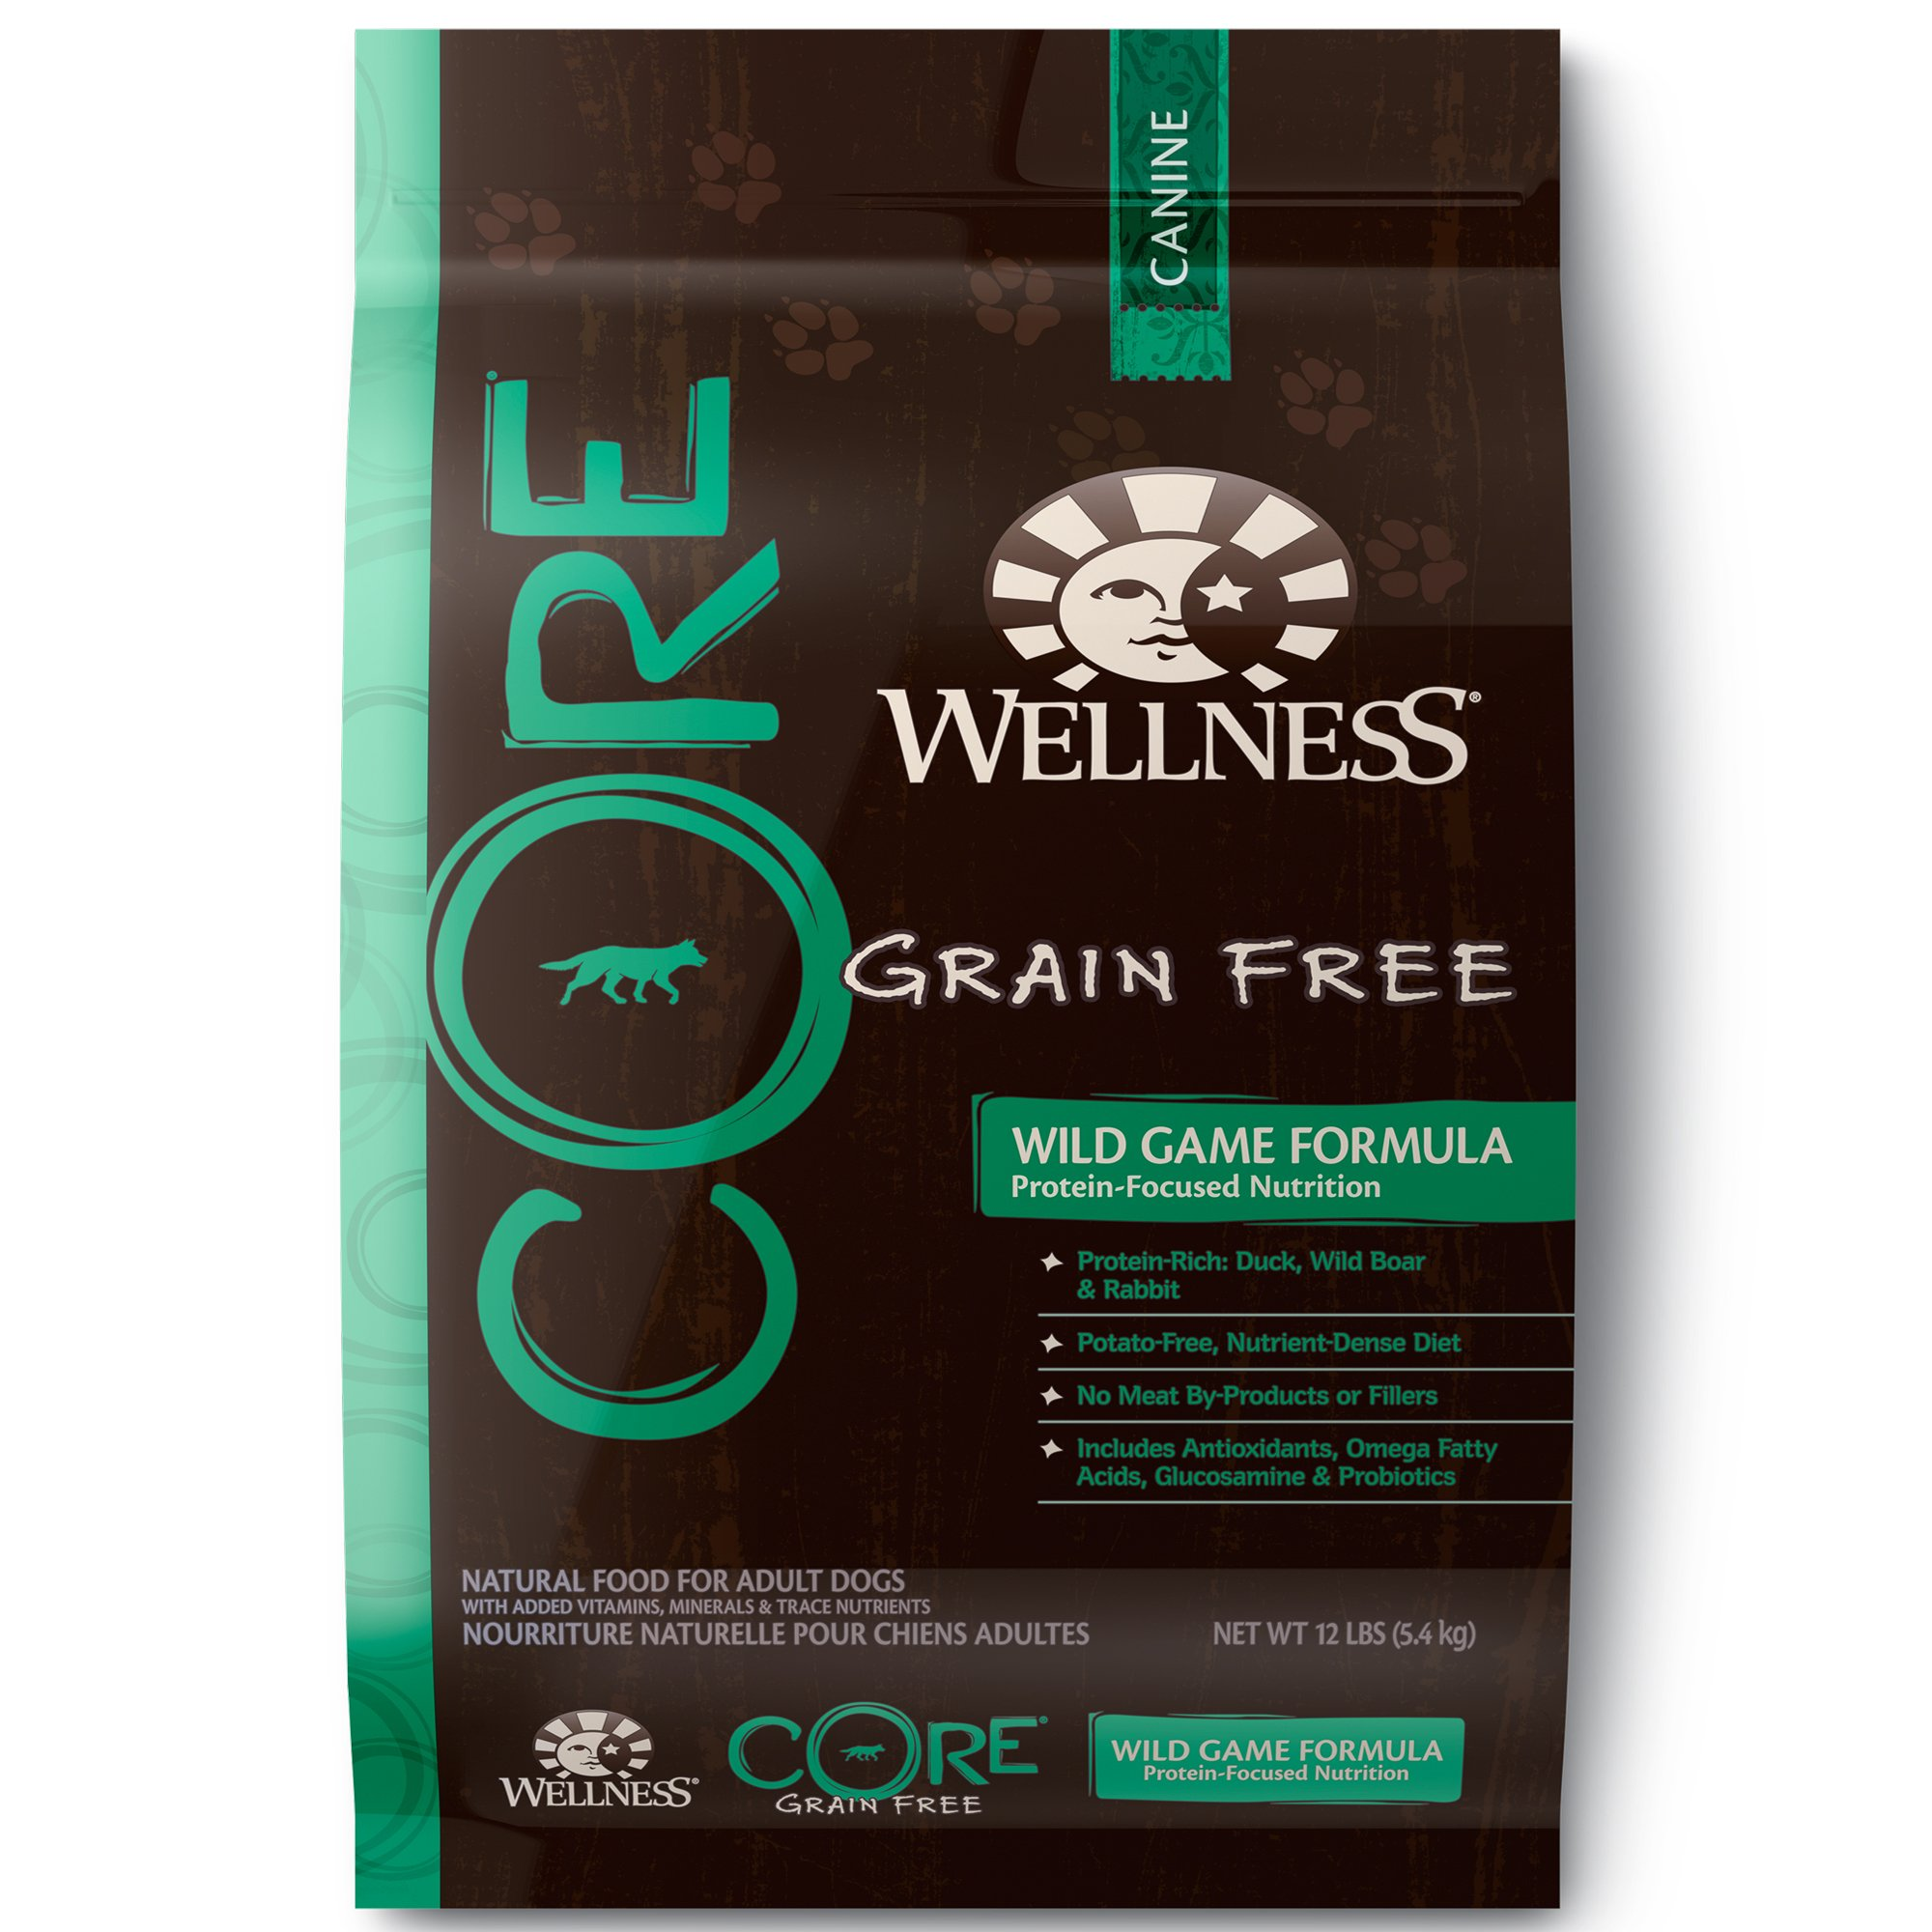 Wellness Core Grain Free Wild Game Adult Dog Food Petco